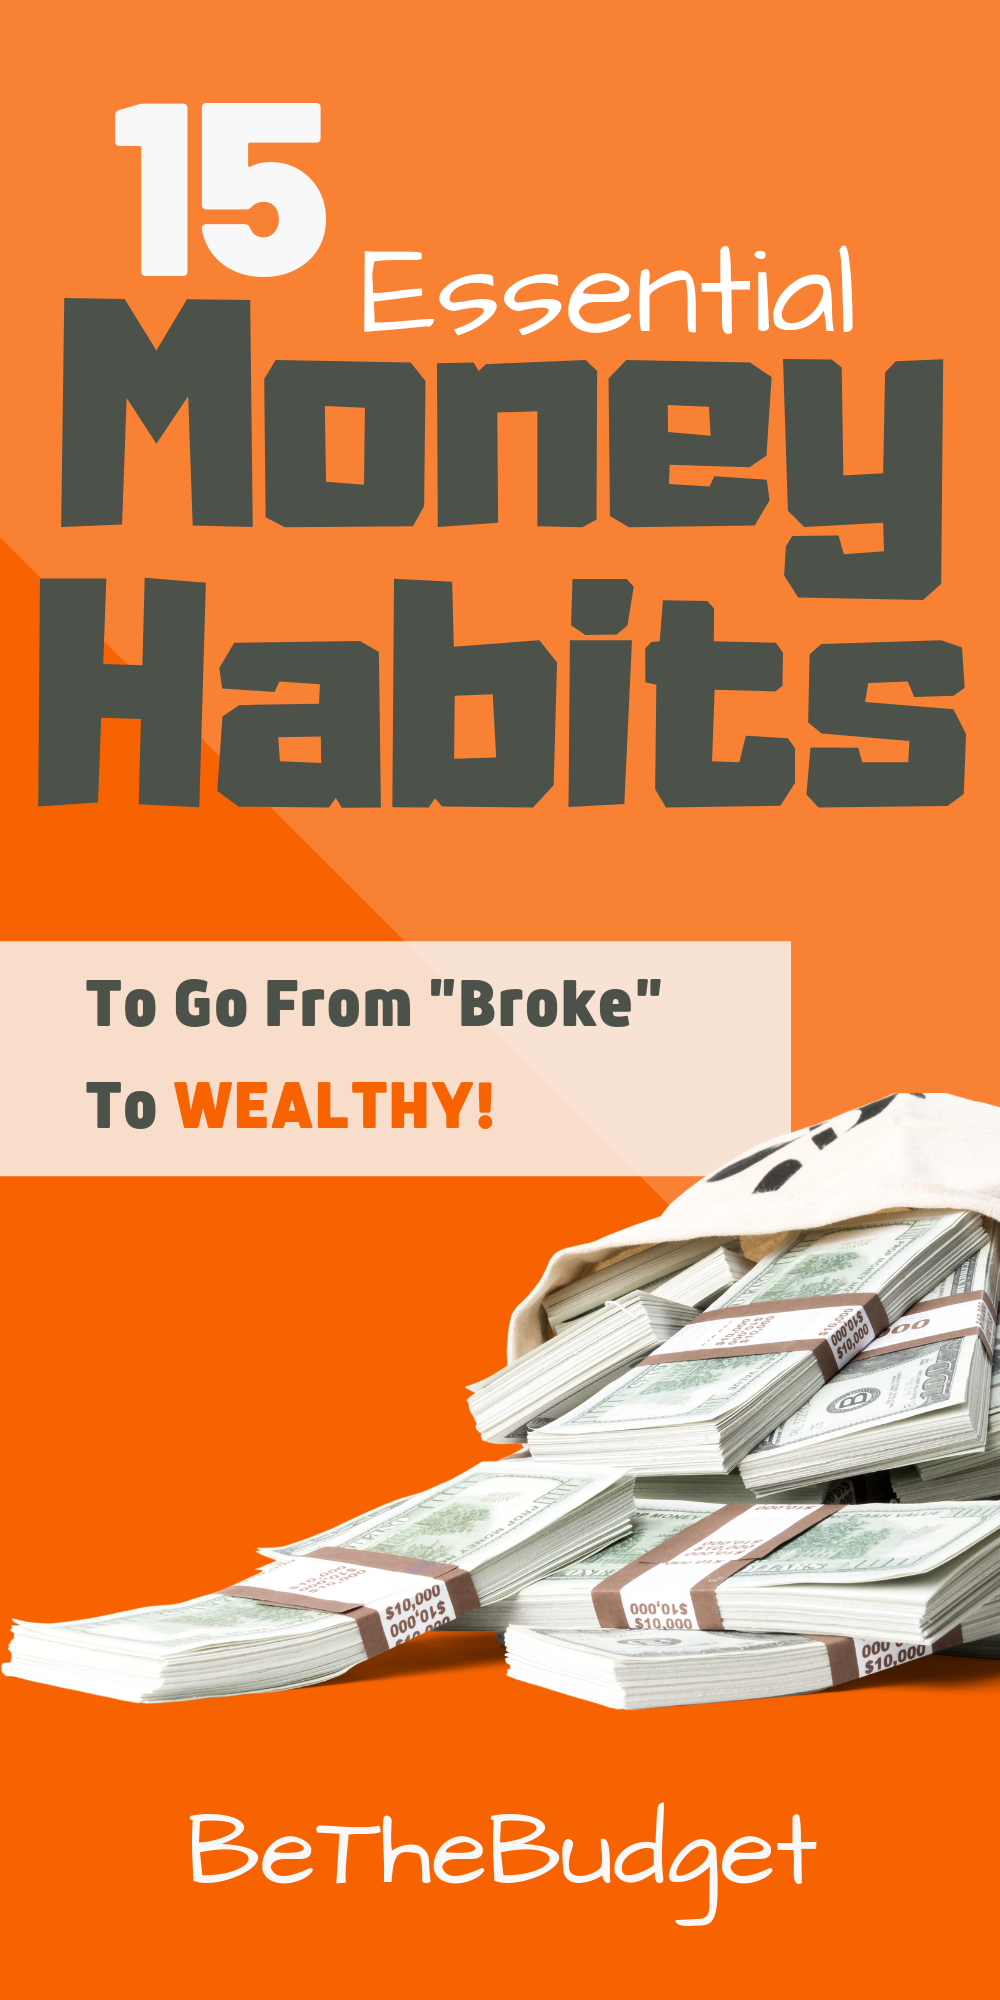 15 Good Money Habits To Turn Your Finances Around (With